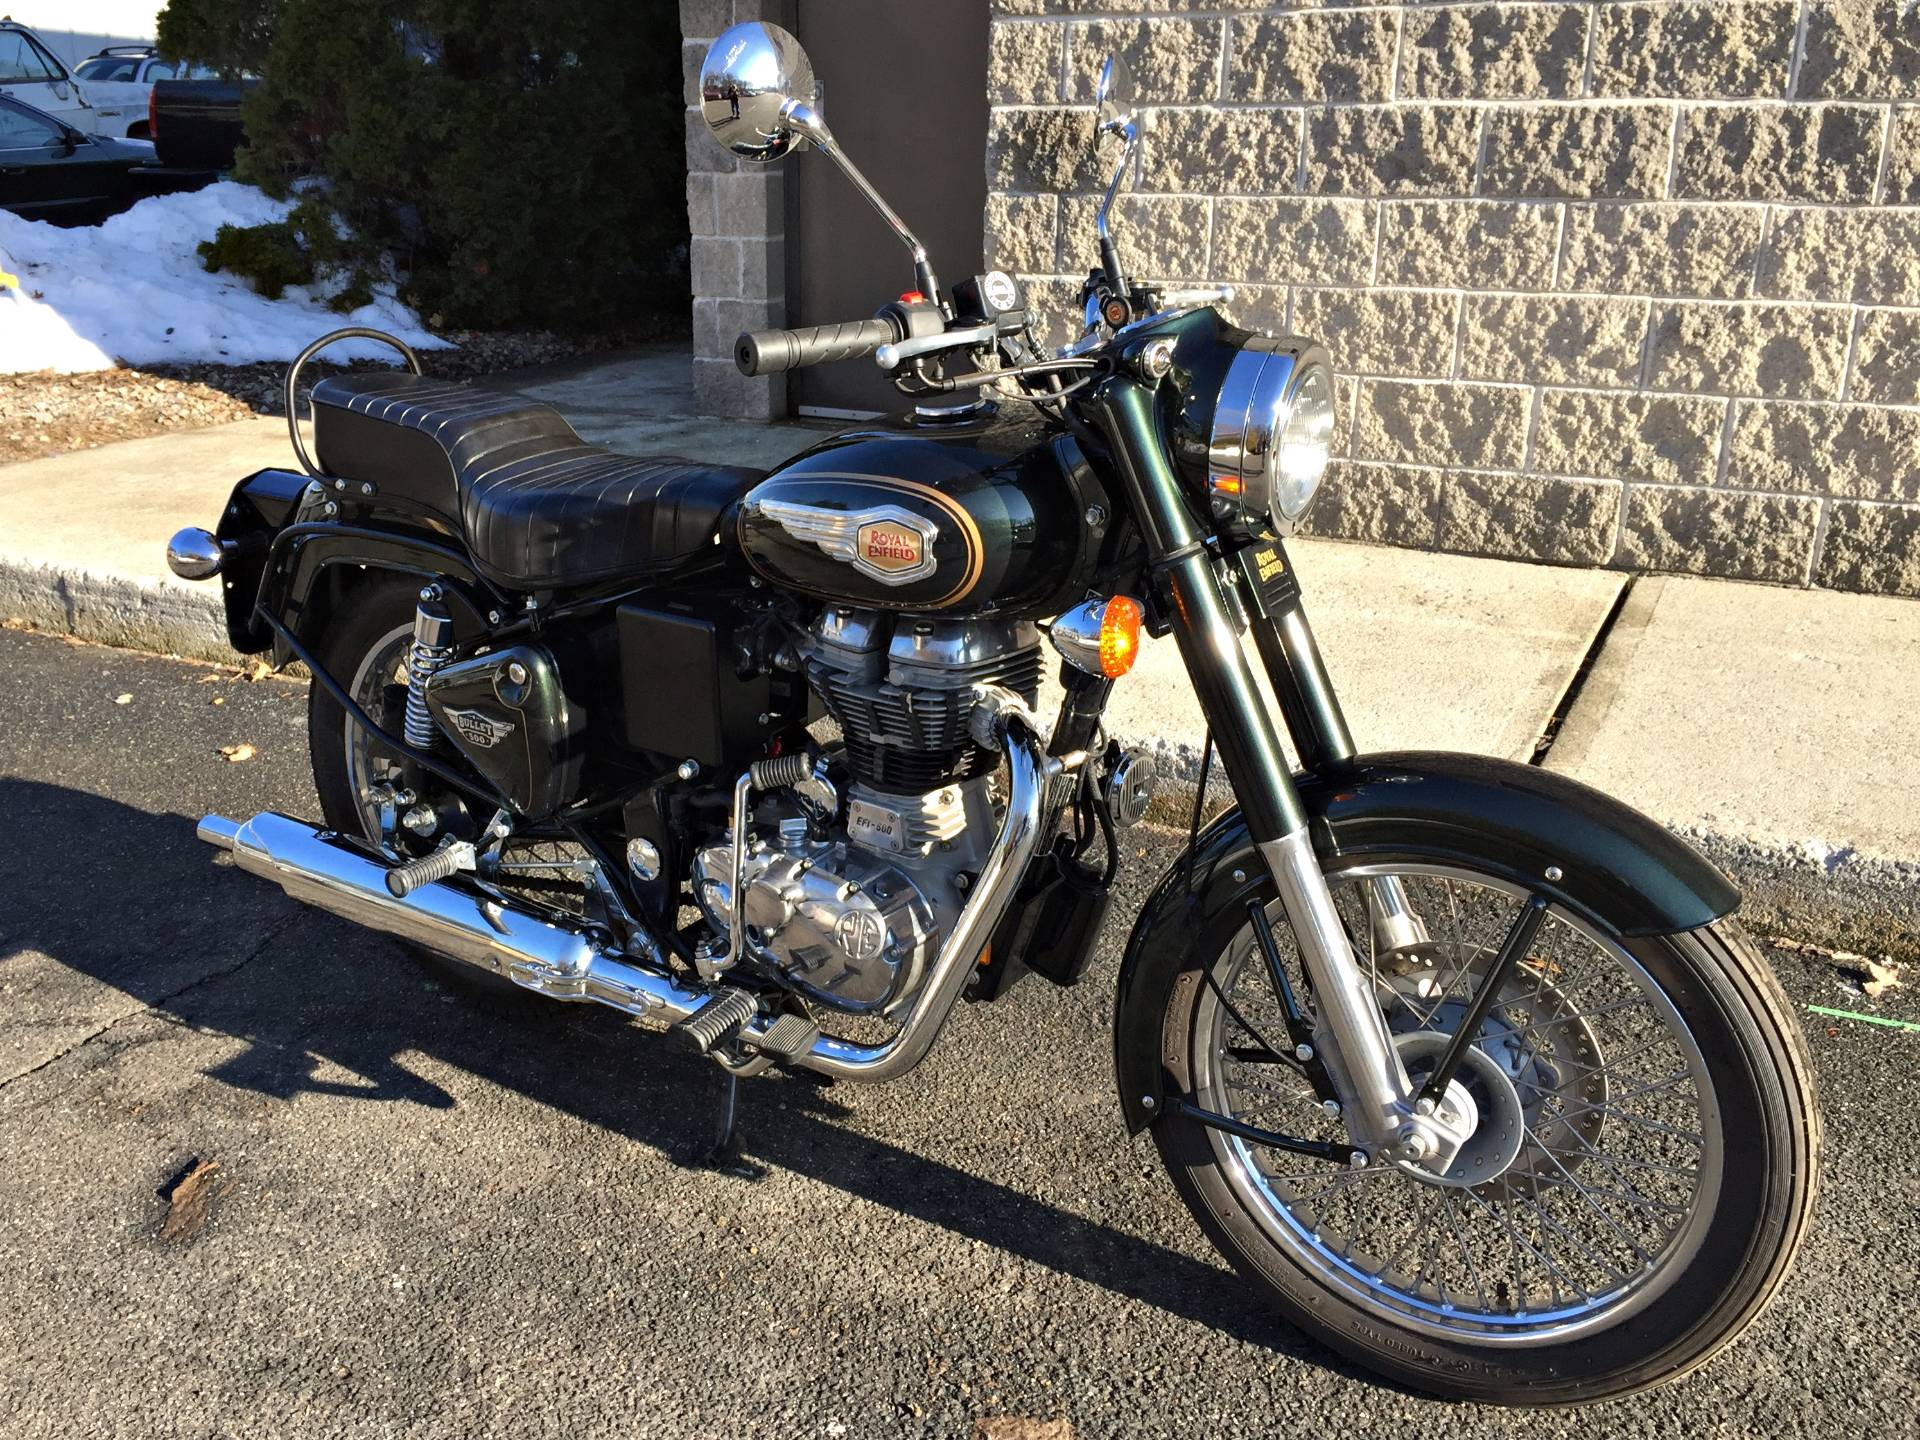 Royal enfield bullet pictures - 2016 Royal Enfield Bullet 500 Efi In Enfield Connecticut